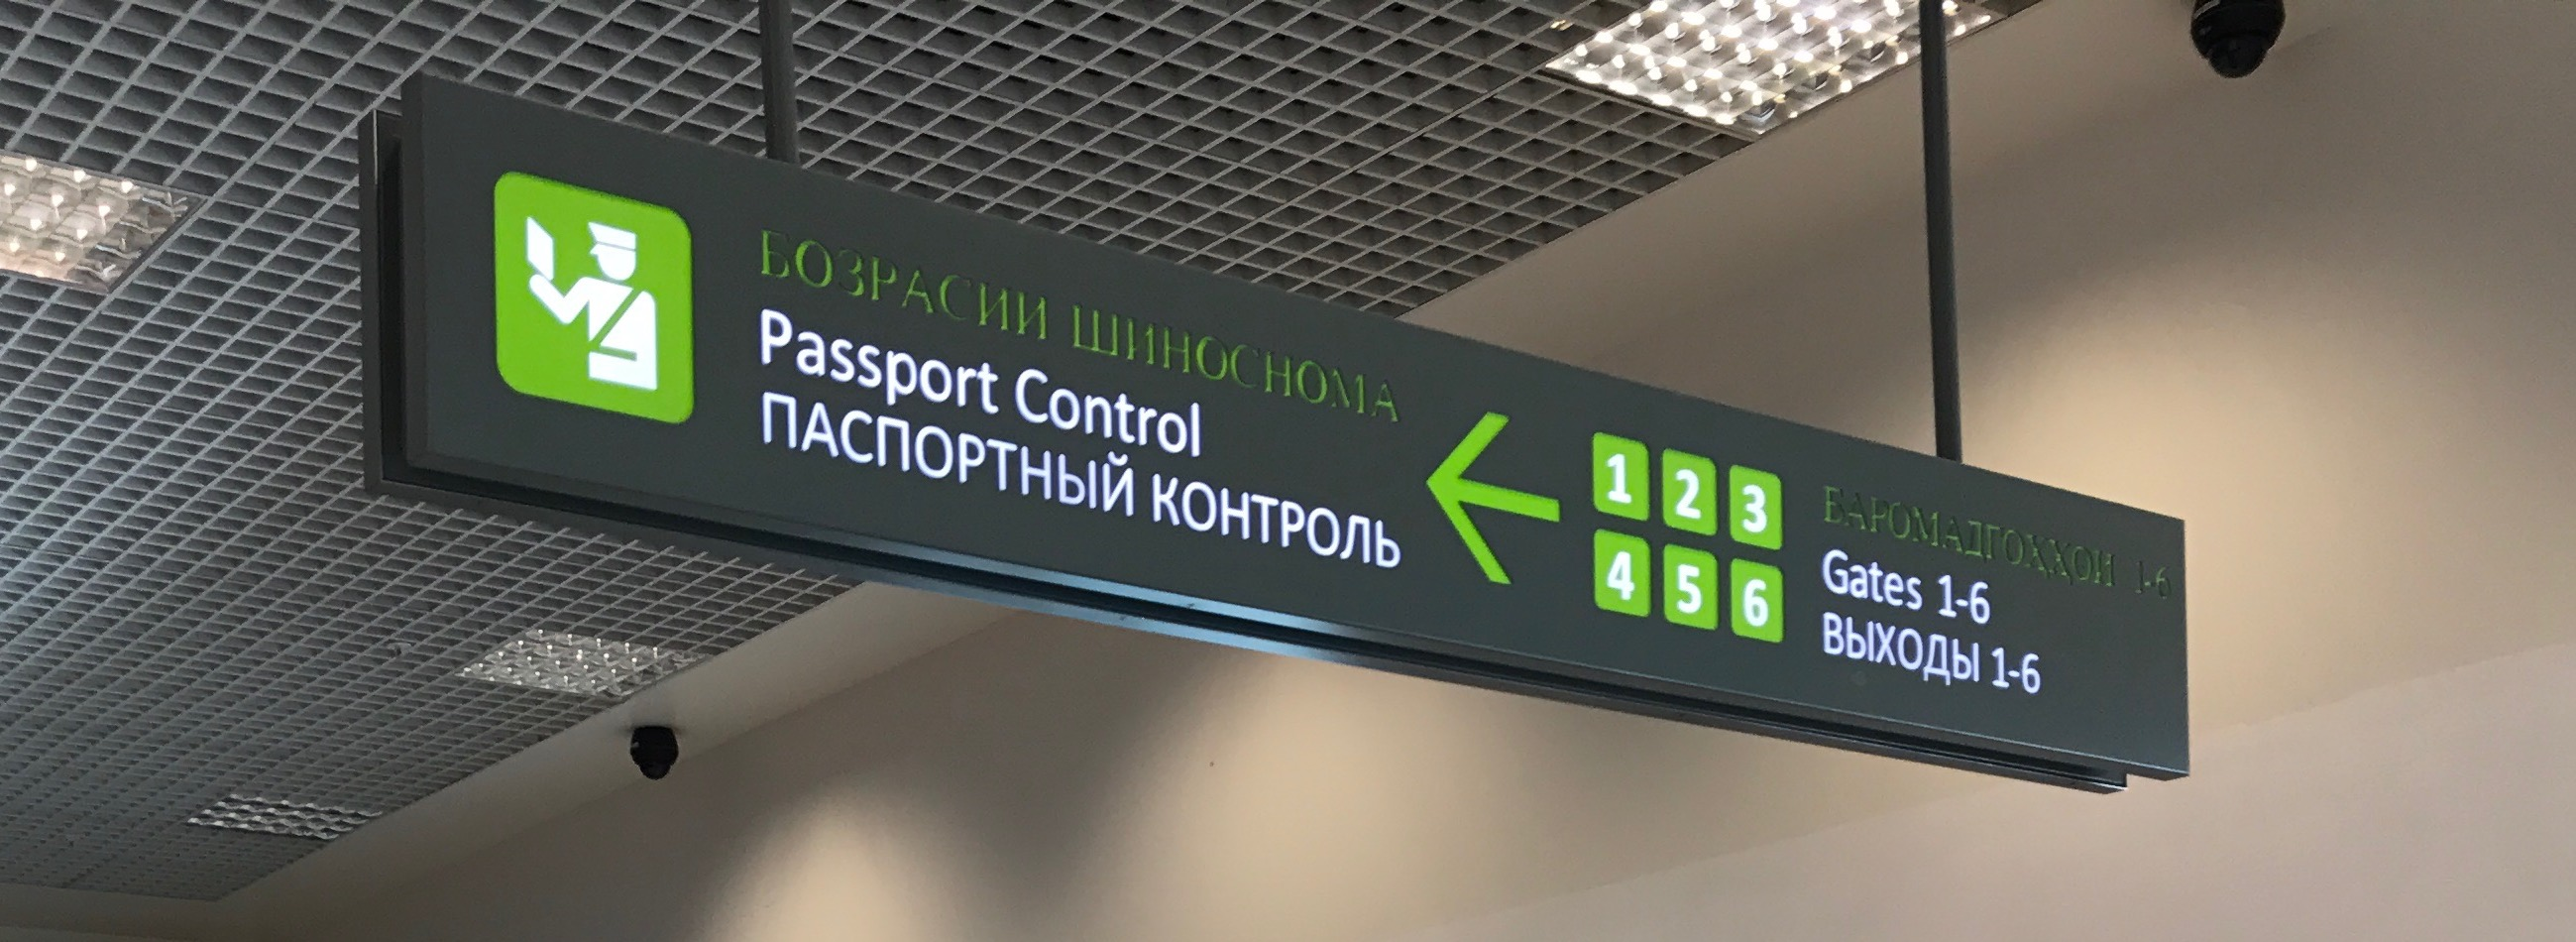 How to Obtain a Visa on Arrival in Tajikistan - Live and